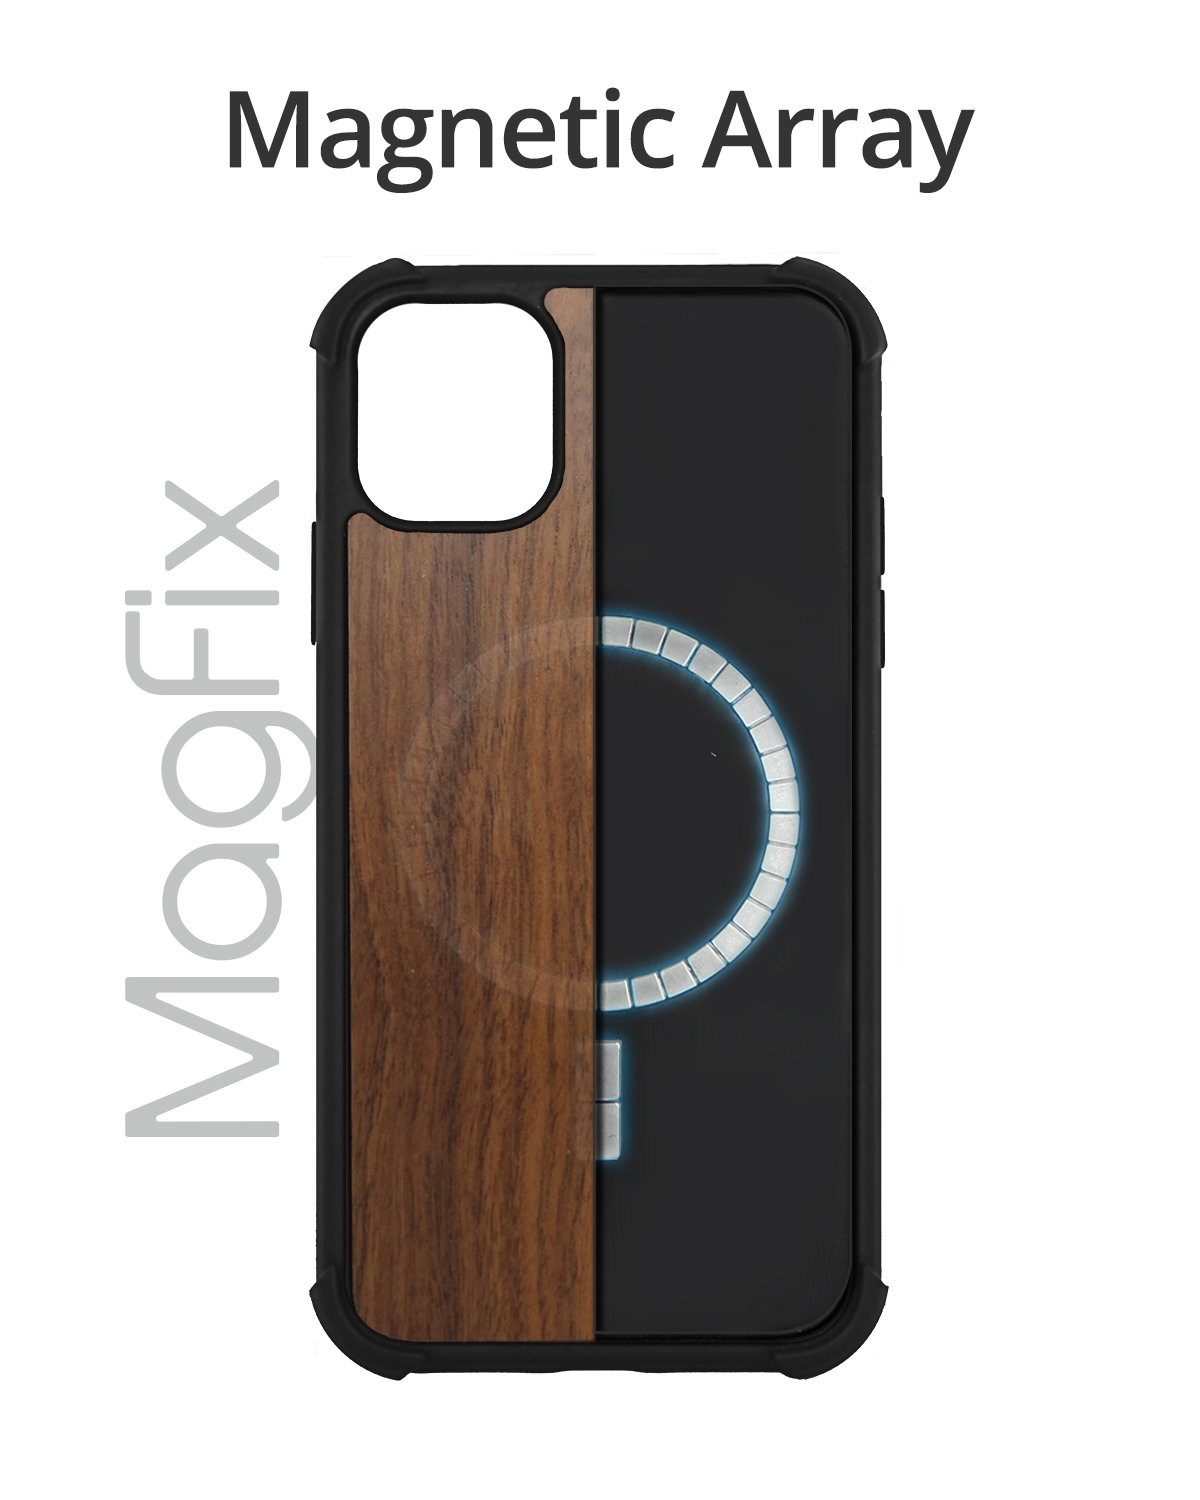 "RAEGR iPhone 12 Mini 5G MagFix Magnetic Case, Supports Mag-Safe Wireless Charging 5.4""- Elements Armor Case  with Real Wood"